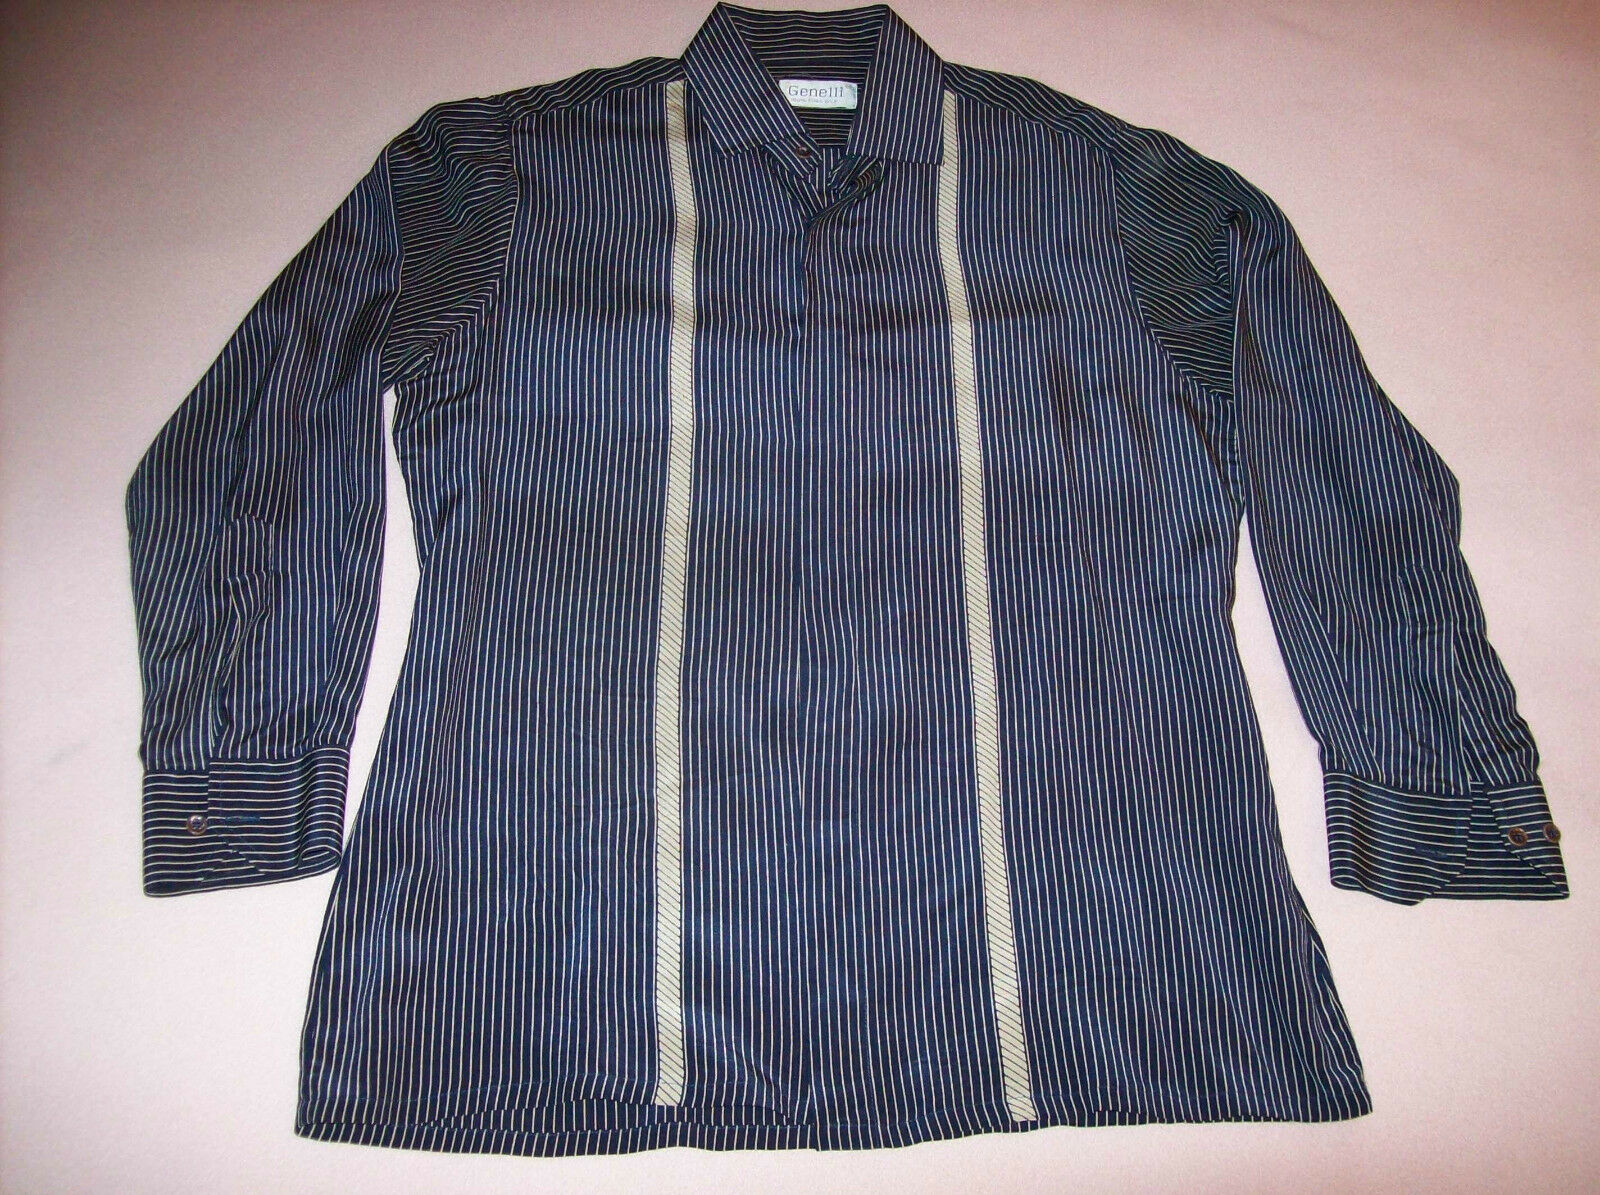 VINTAGE Herren GENELLI  FITTED 100% SILK SHIRT NAVY AND TAN STRIPED SIZE MEDIUM